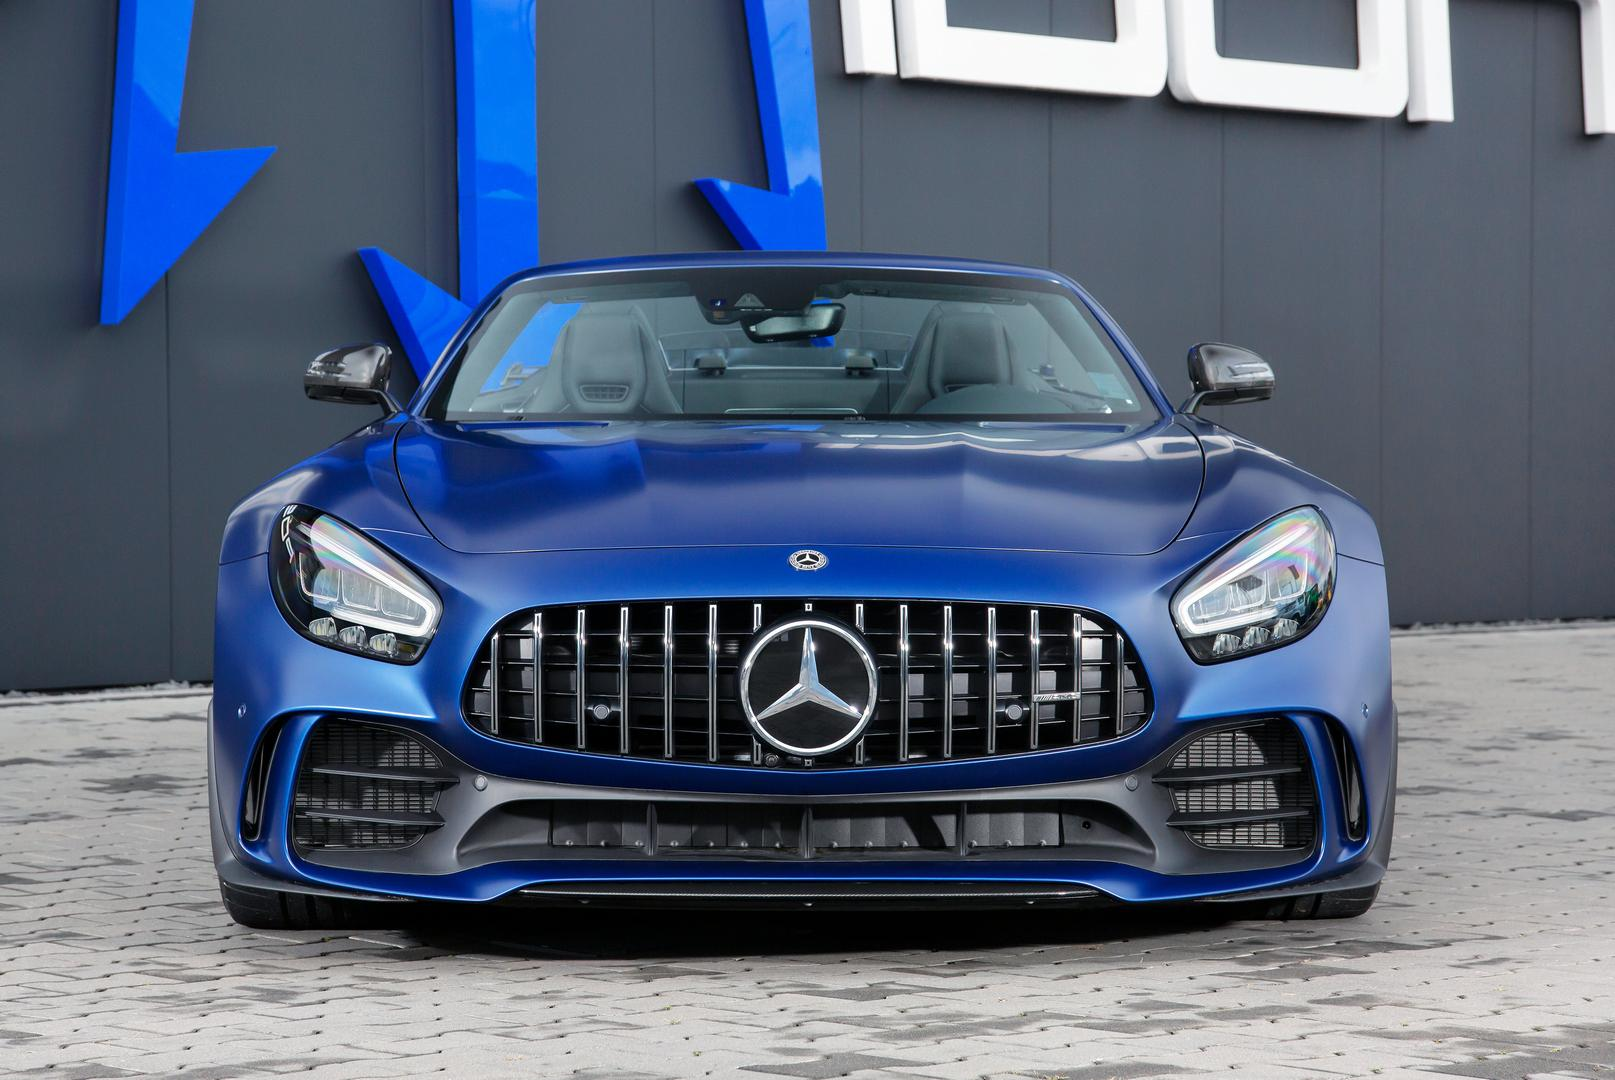 Posaidon Mercedes-AMG GT R Roadster front